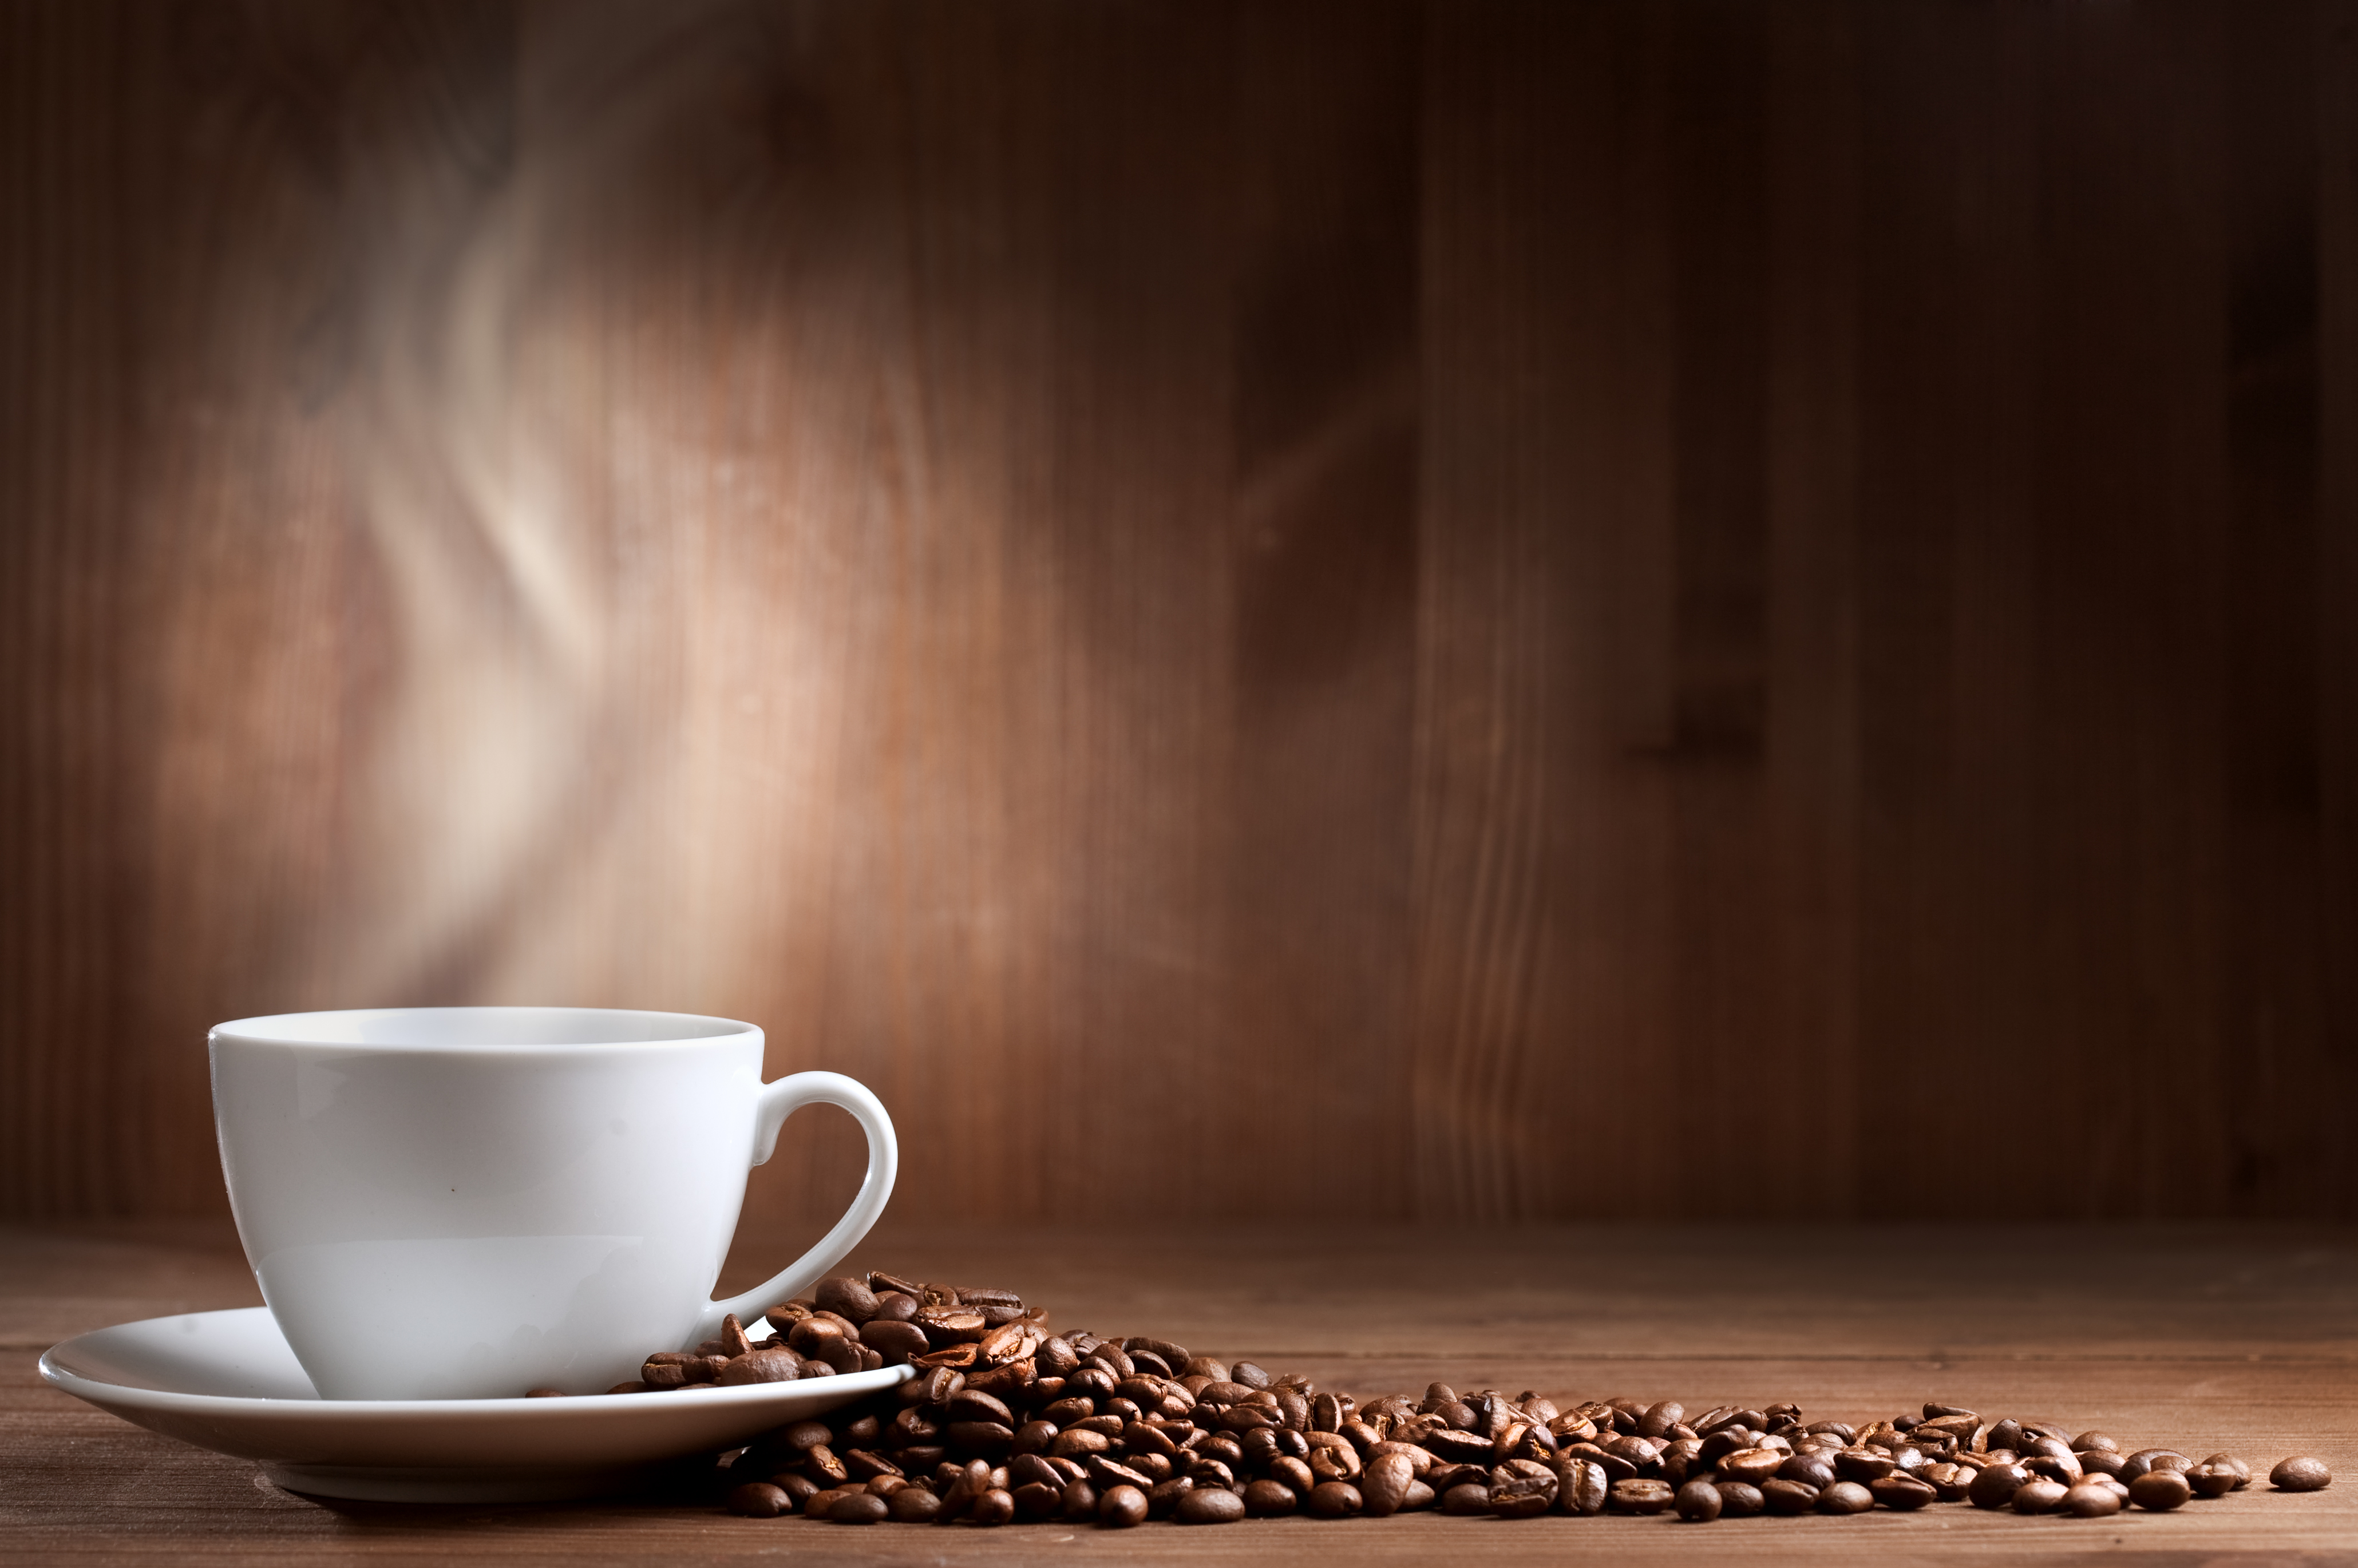 There are 25 to 100 species of coffee plants however all commercial coffee comes from two species u2013 Arabica ...